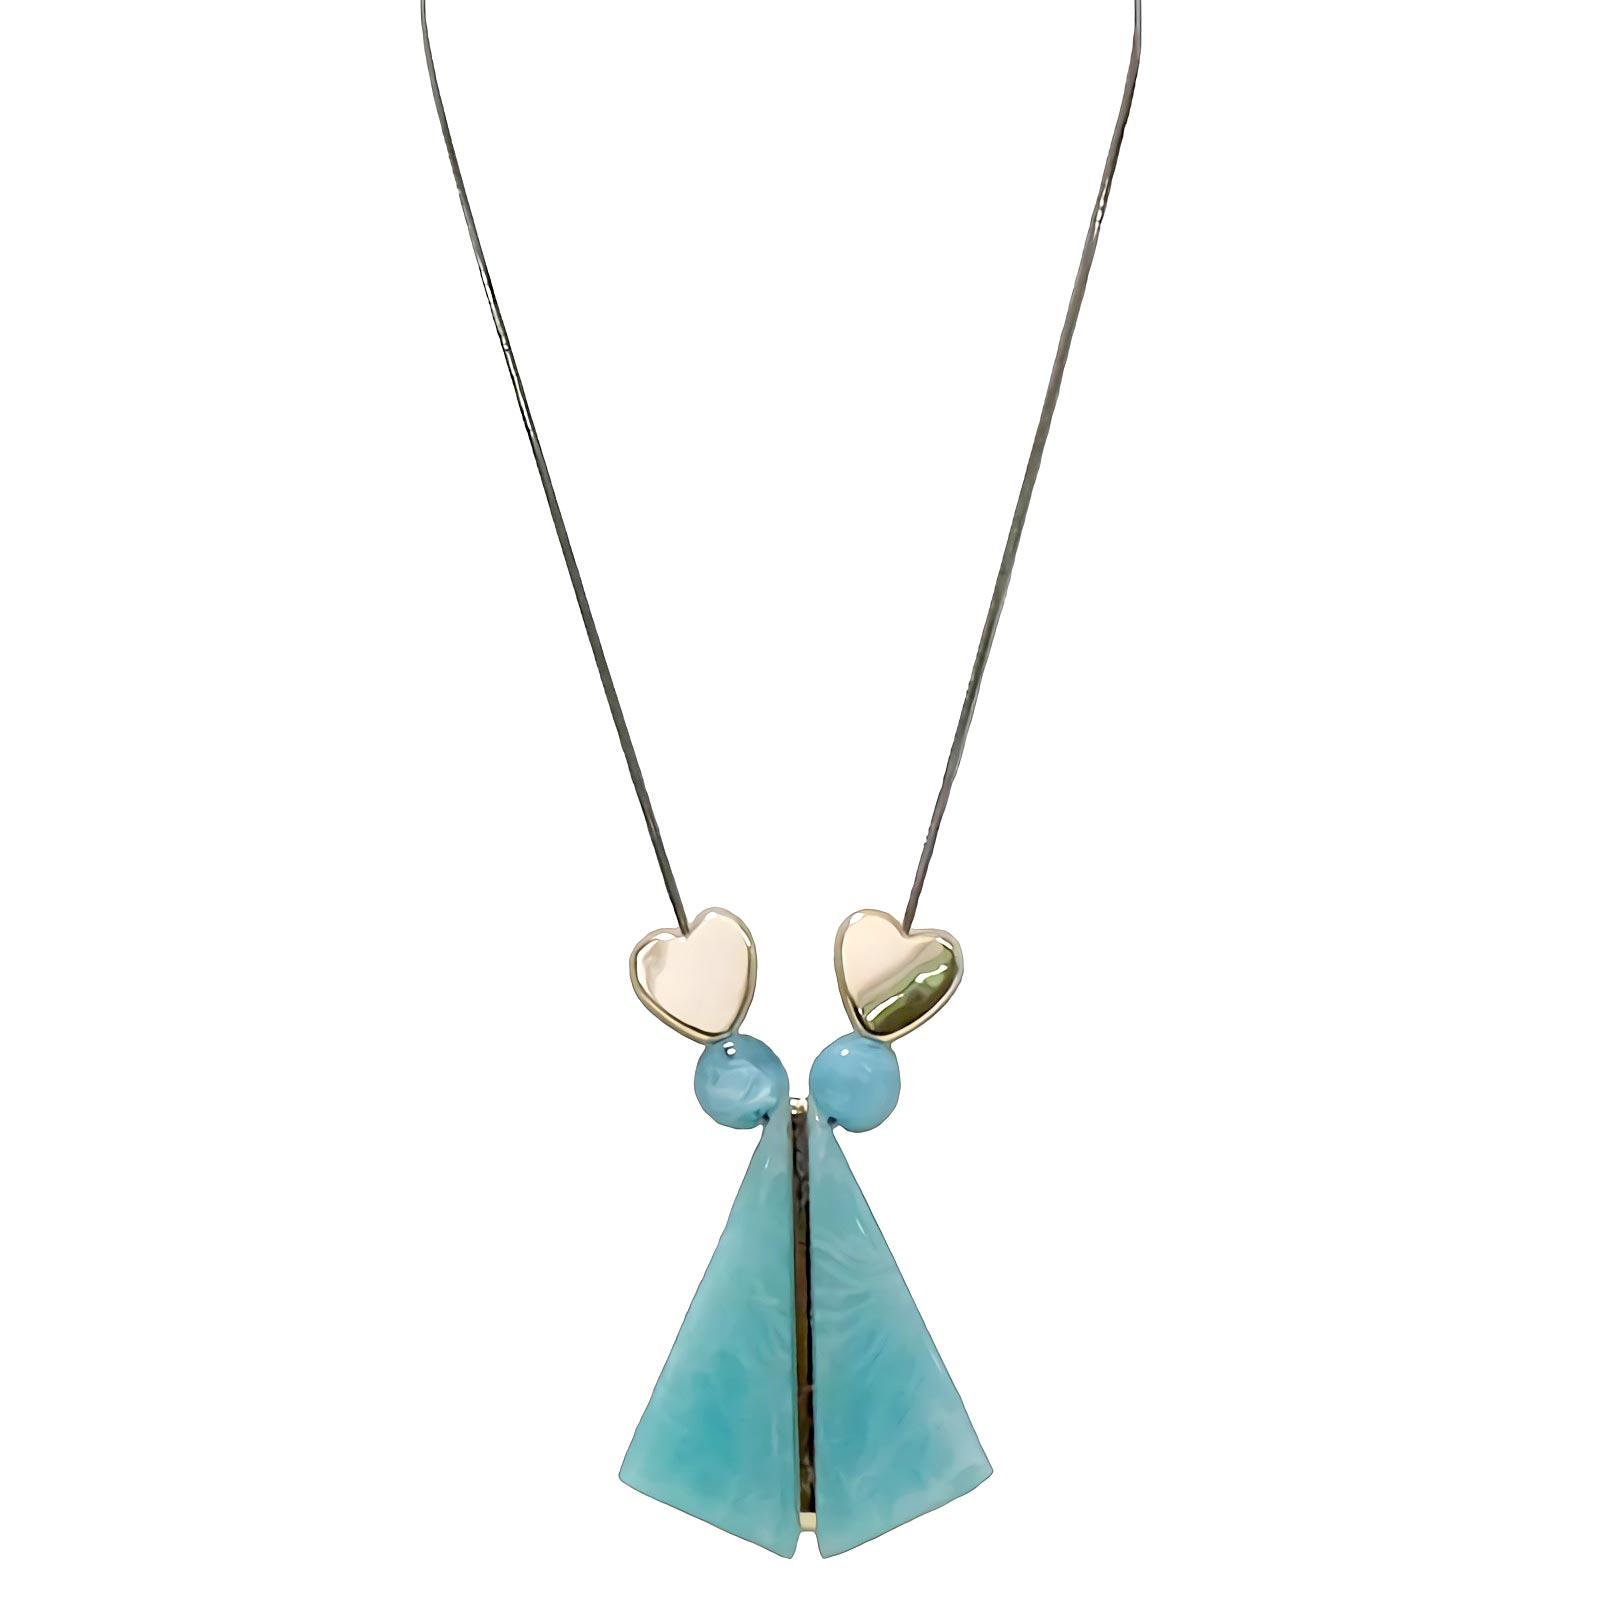 OFASHION Aksesoris Kalung Wanita [Panjang 78CM] Necklace Fashion Xuping Jewelry CA-180509-K020 Biru